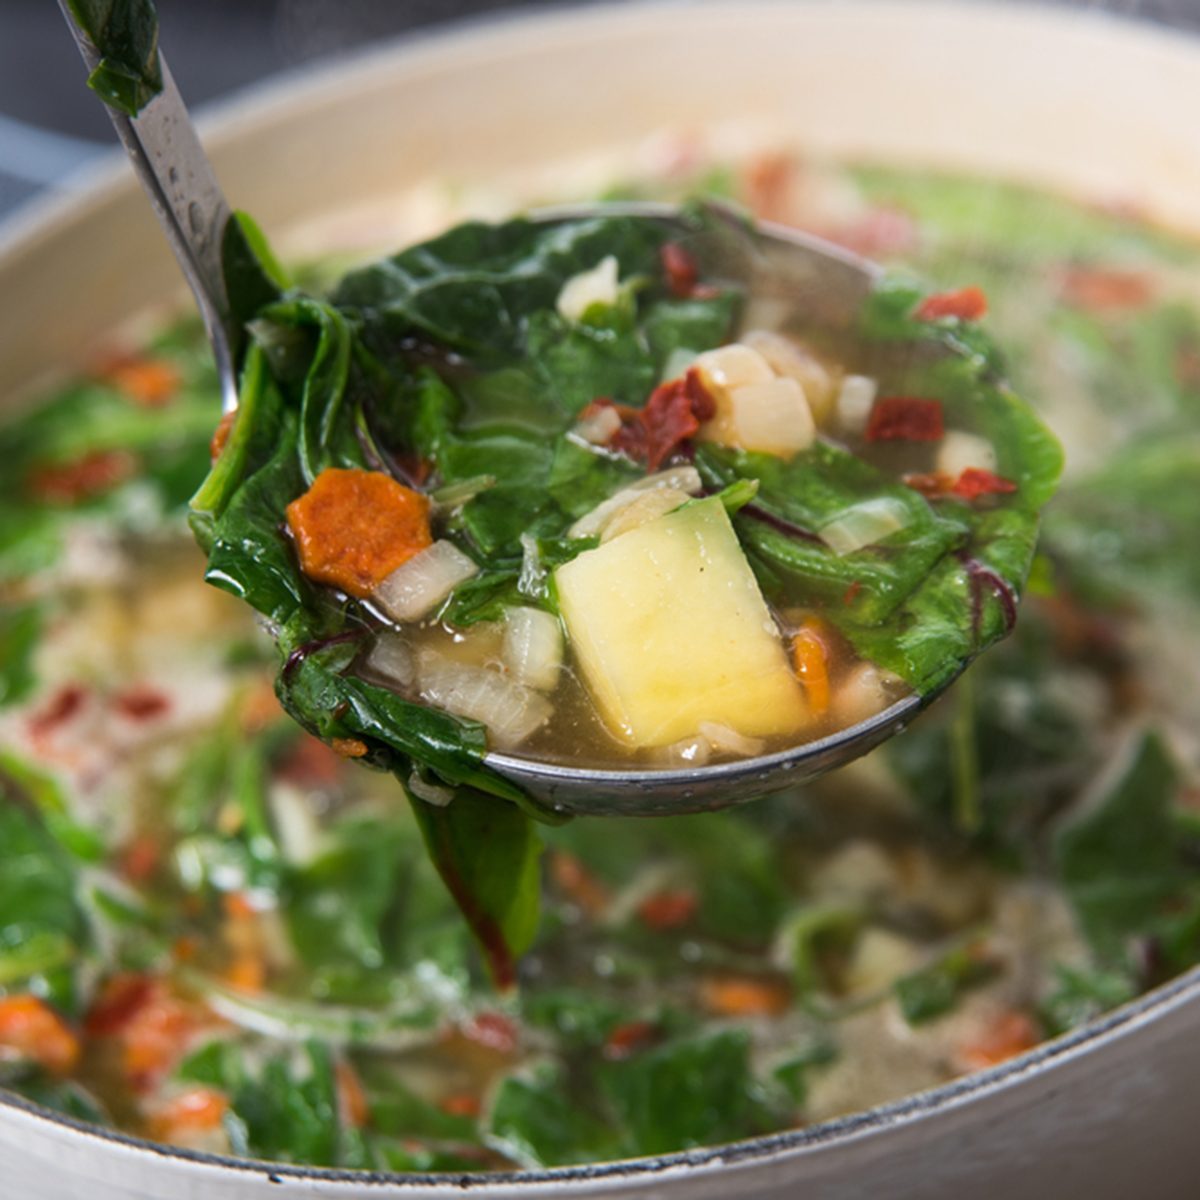 Making Fresh Soup with Baby Greens, Vegetables, and Chicken Bone Broth